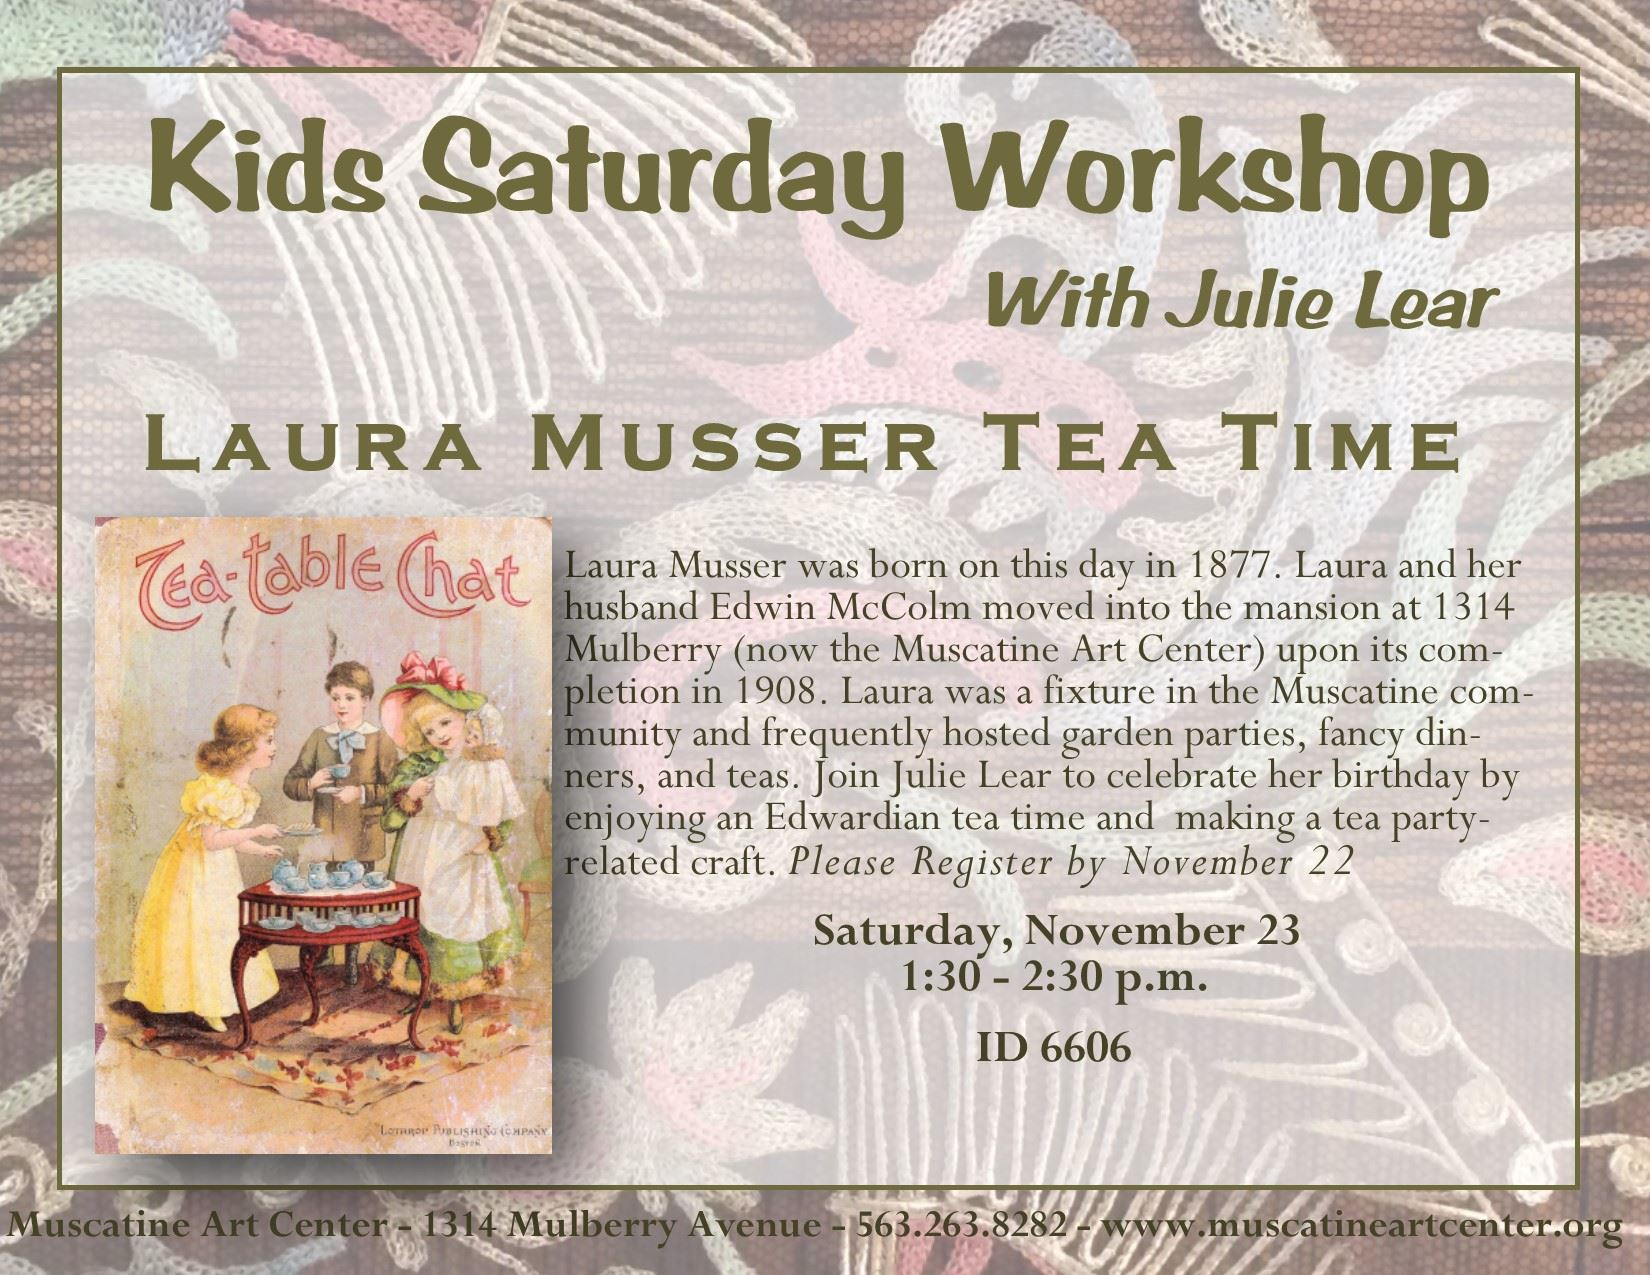 November 23 -Laura Musser Tea Time - KSW